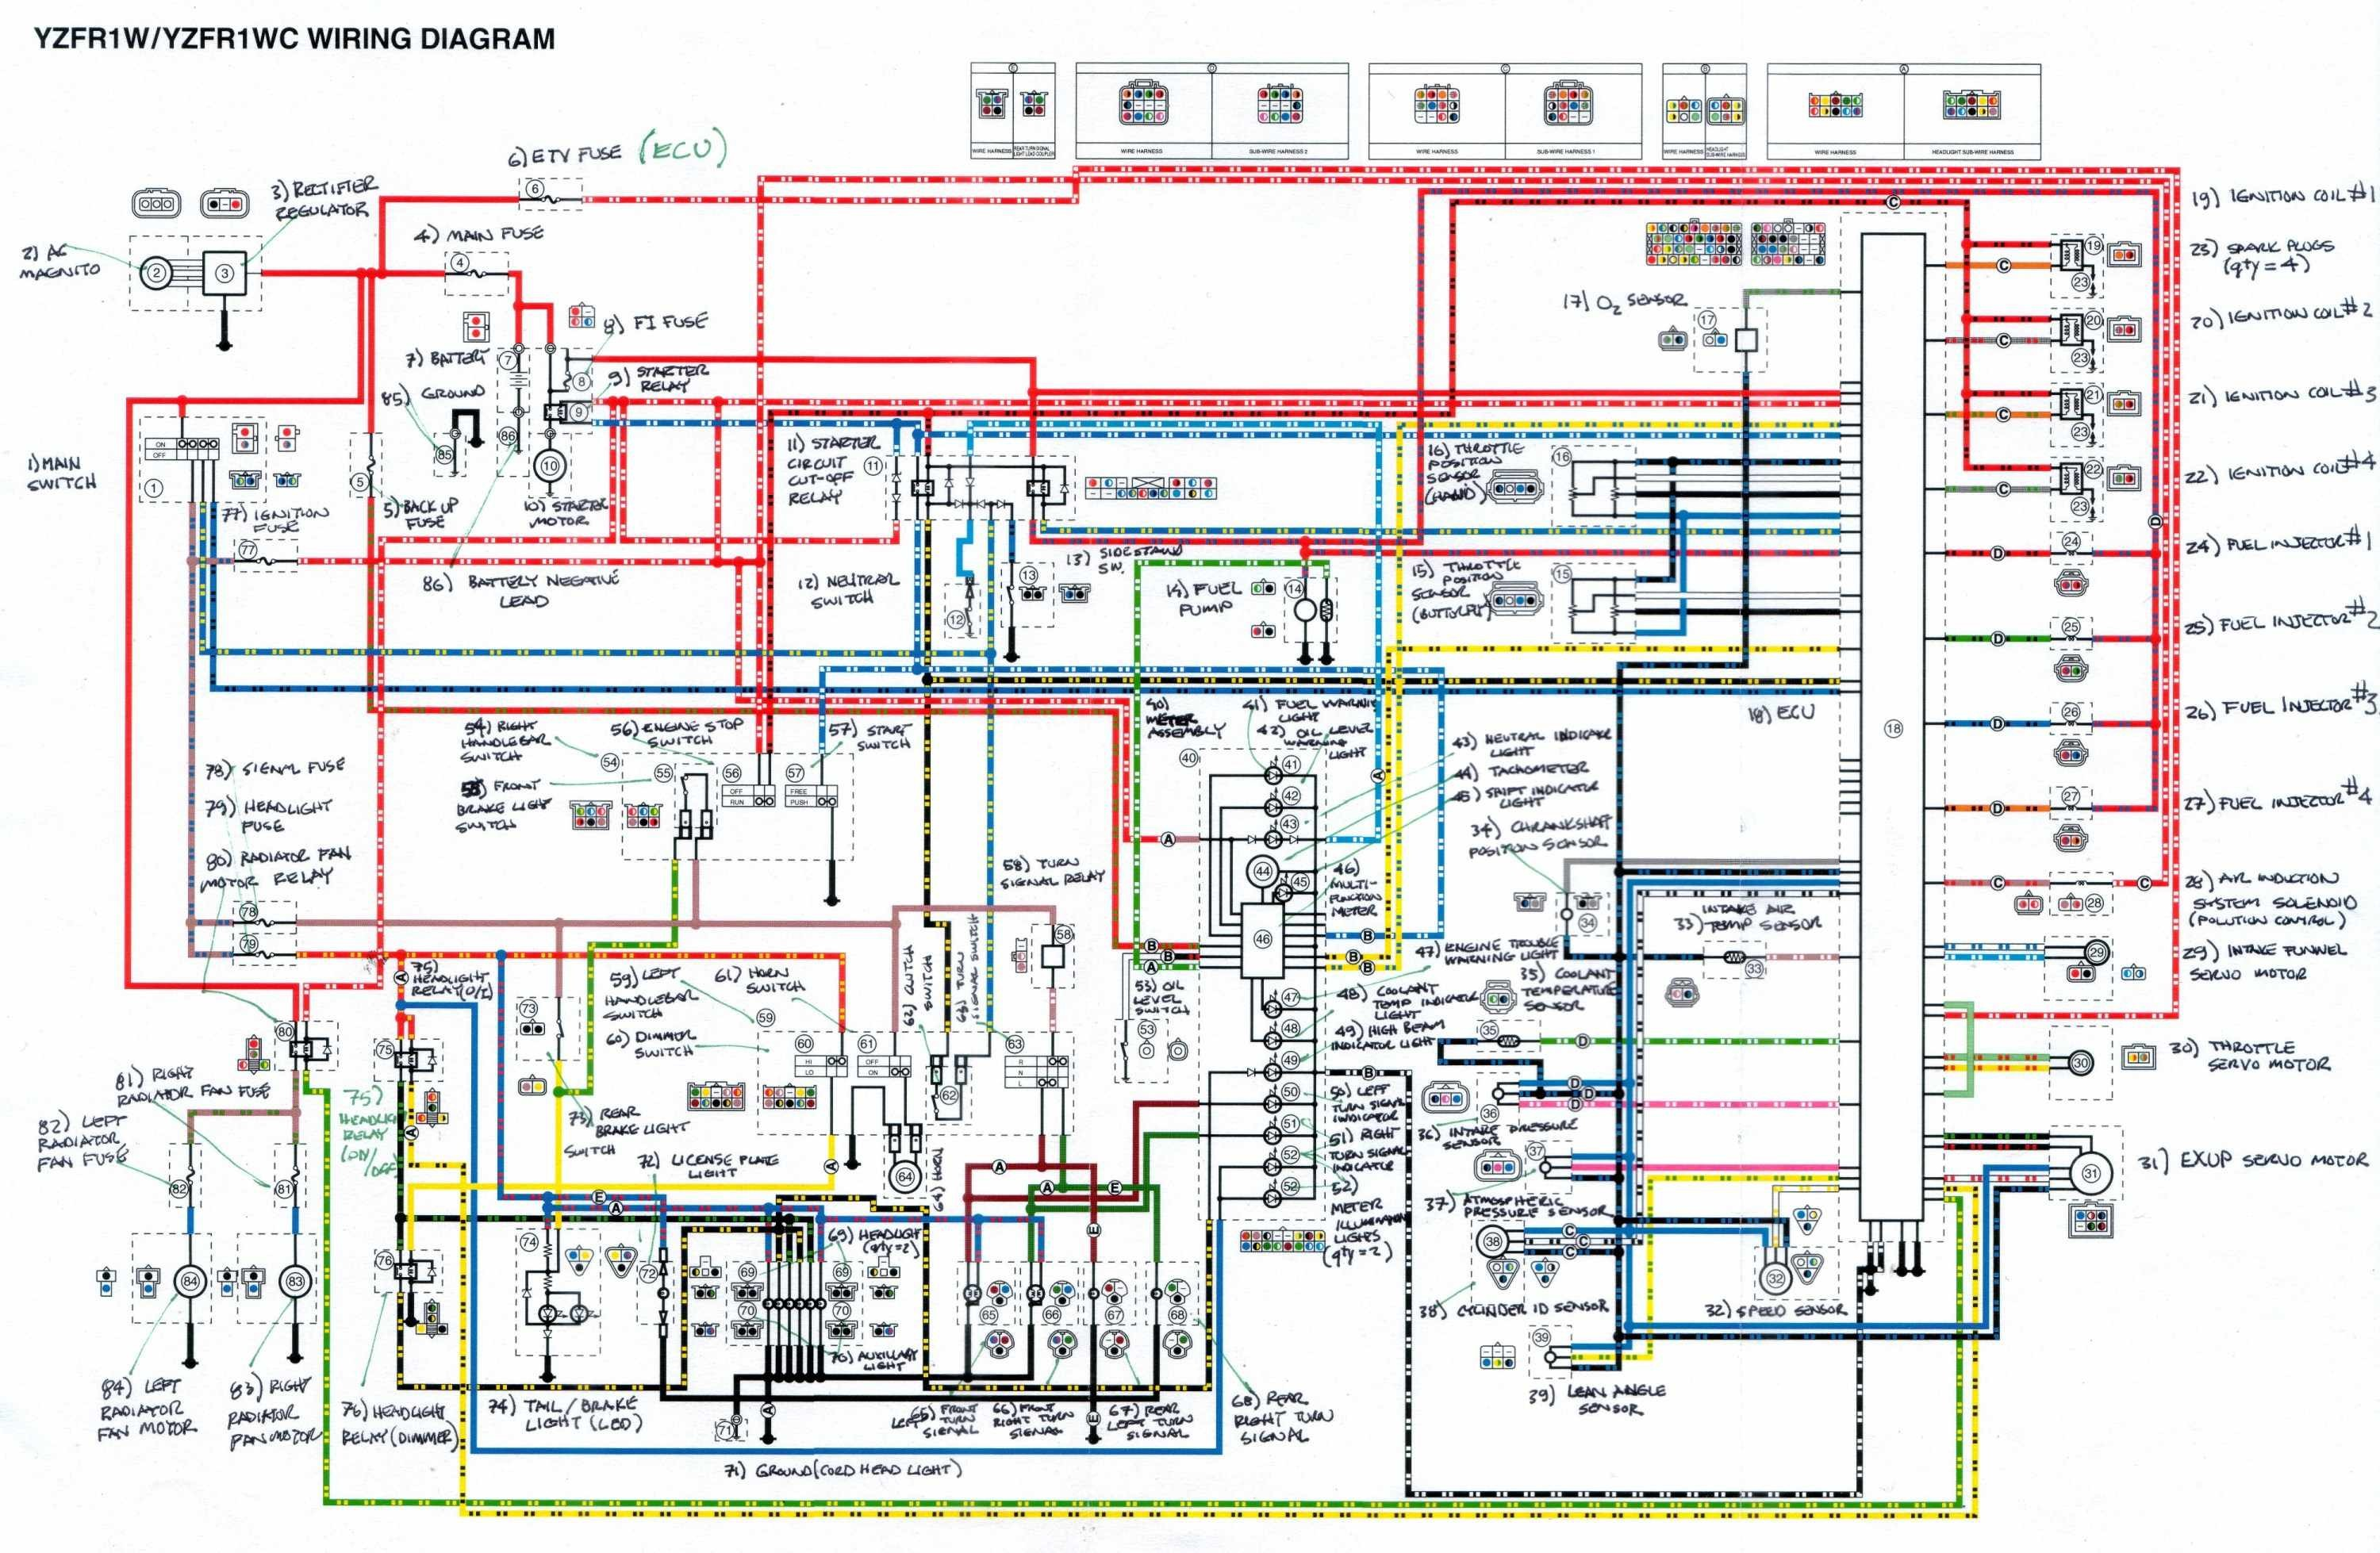 Vfr Wiring Diagram Page 5 And Schematics Modern Fuse Box Honda 800 Smart Diagrams Source Info U2022 Rh Cardsbox Co 2008 2002